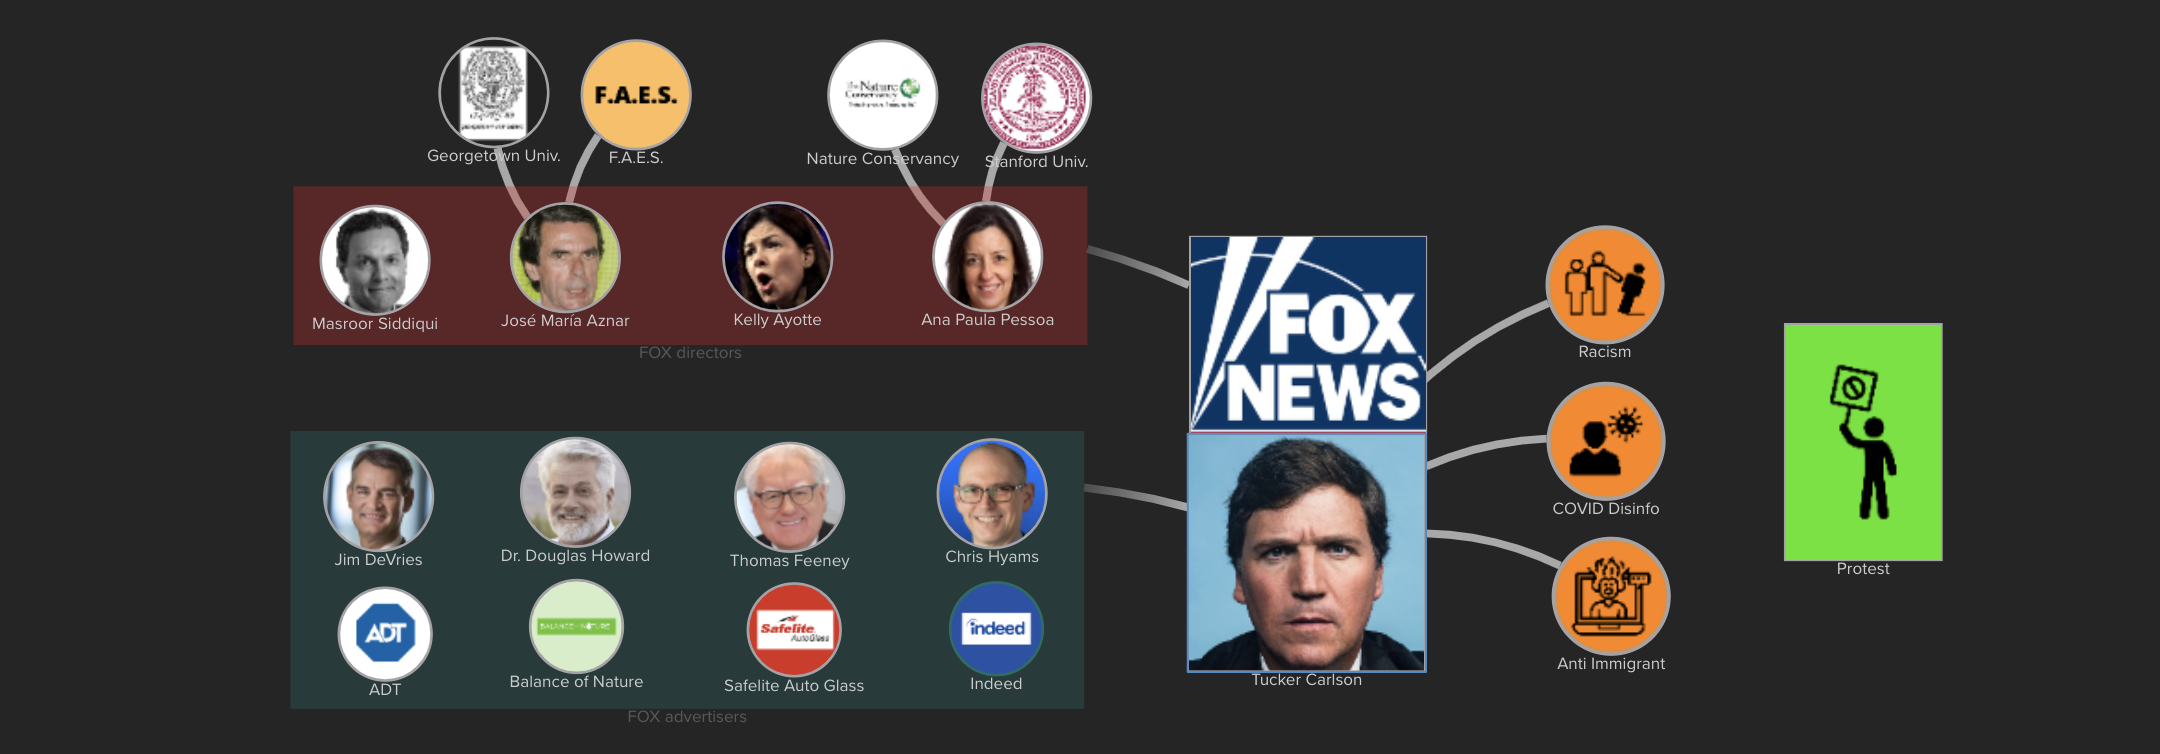 Corporate advertisers supporting Tucker Carlson spreading racism